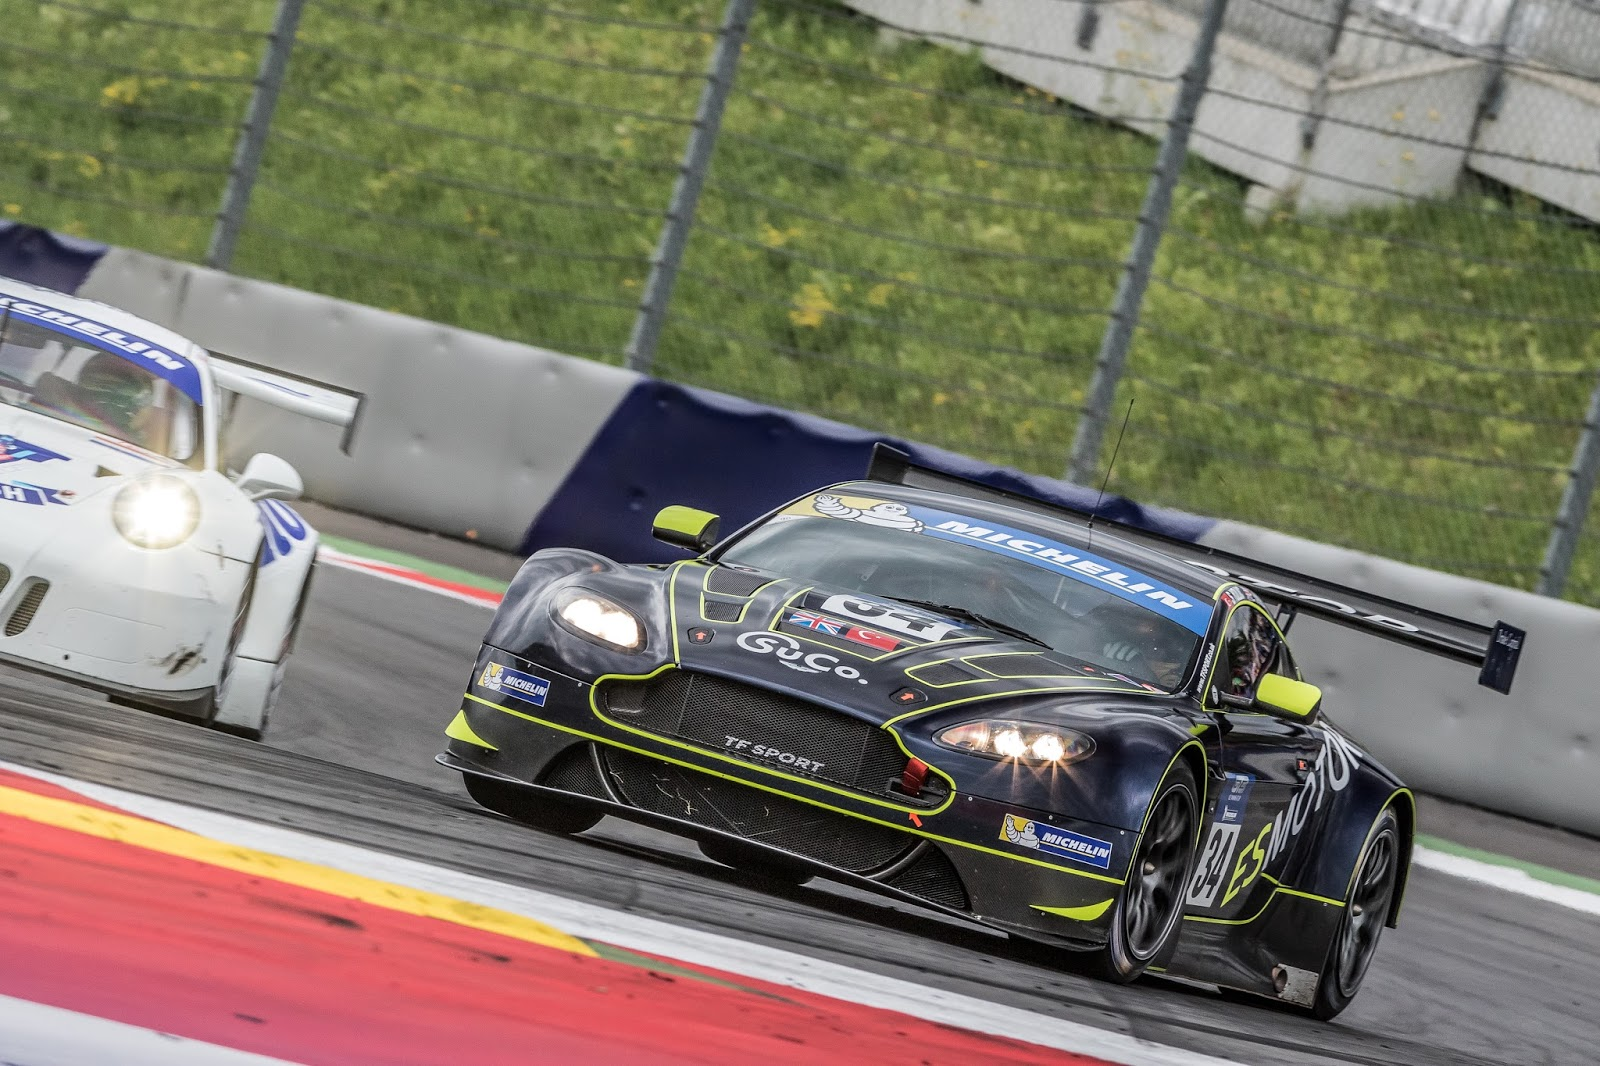 Tf sport are riding high in the michelin gt3 le mans cup as the series reconvenes in the south of france at circuit paul ricard for round four of the